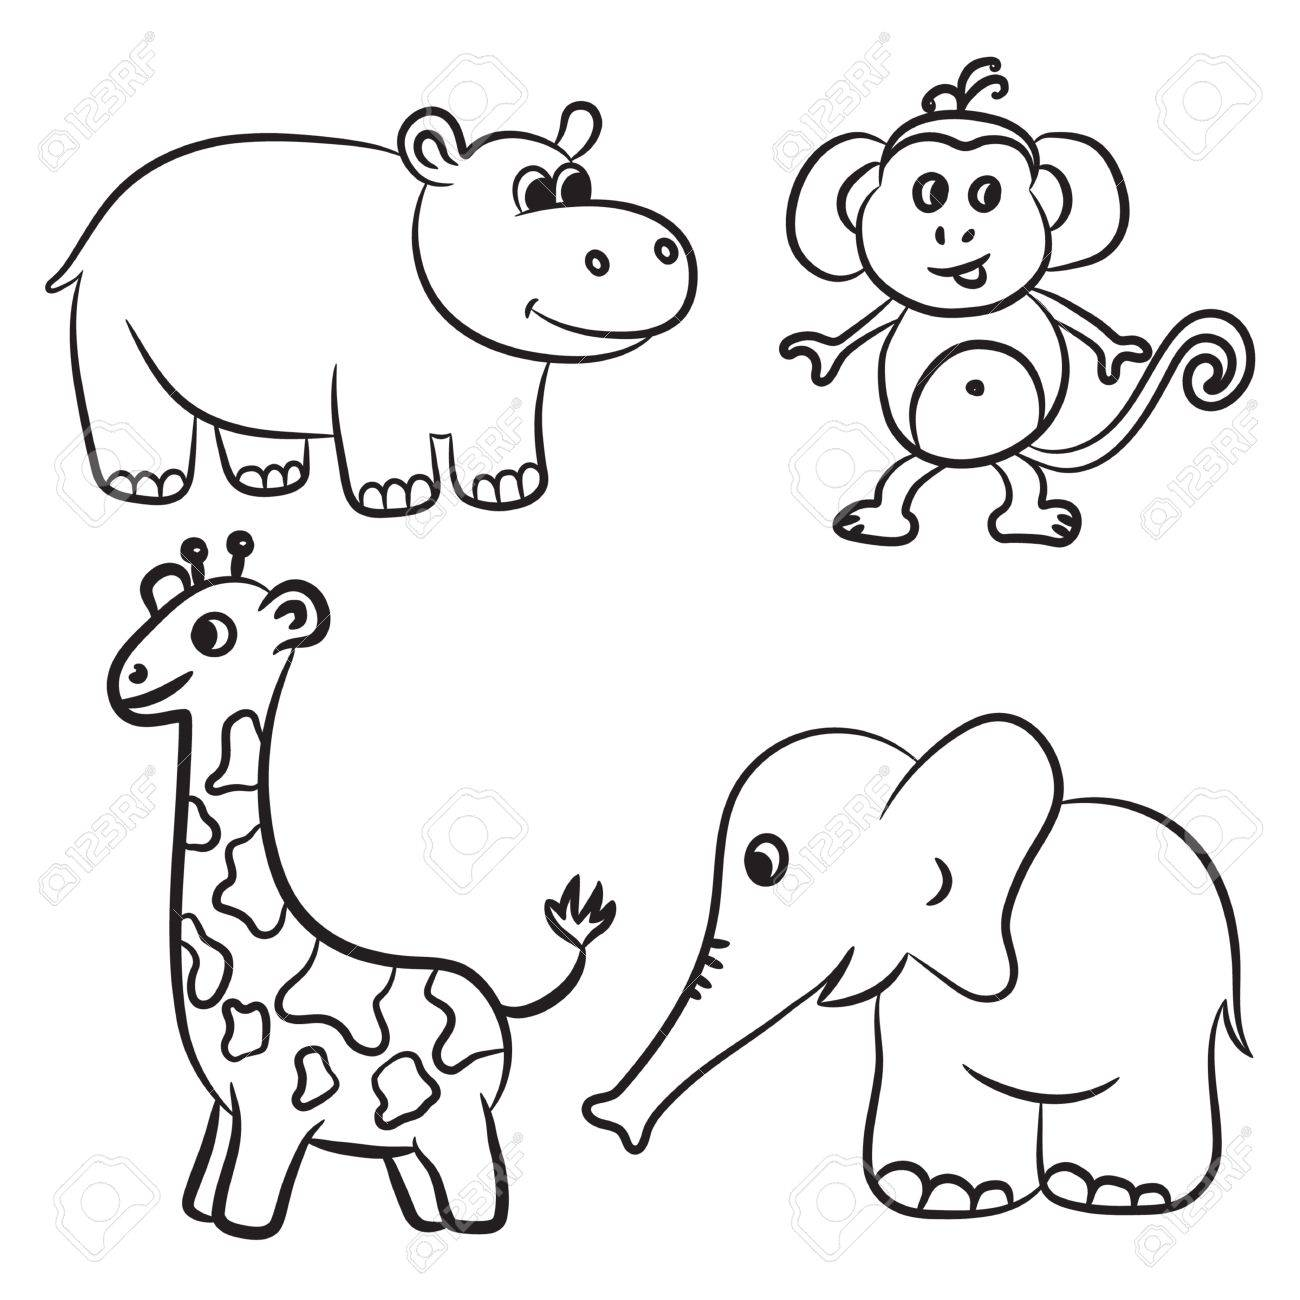 clipart Zoo animals clipart black and white. Portal .